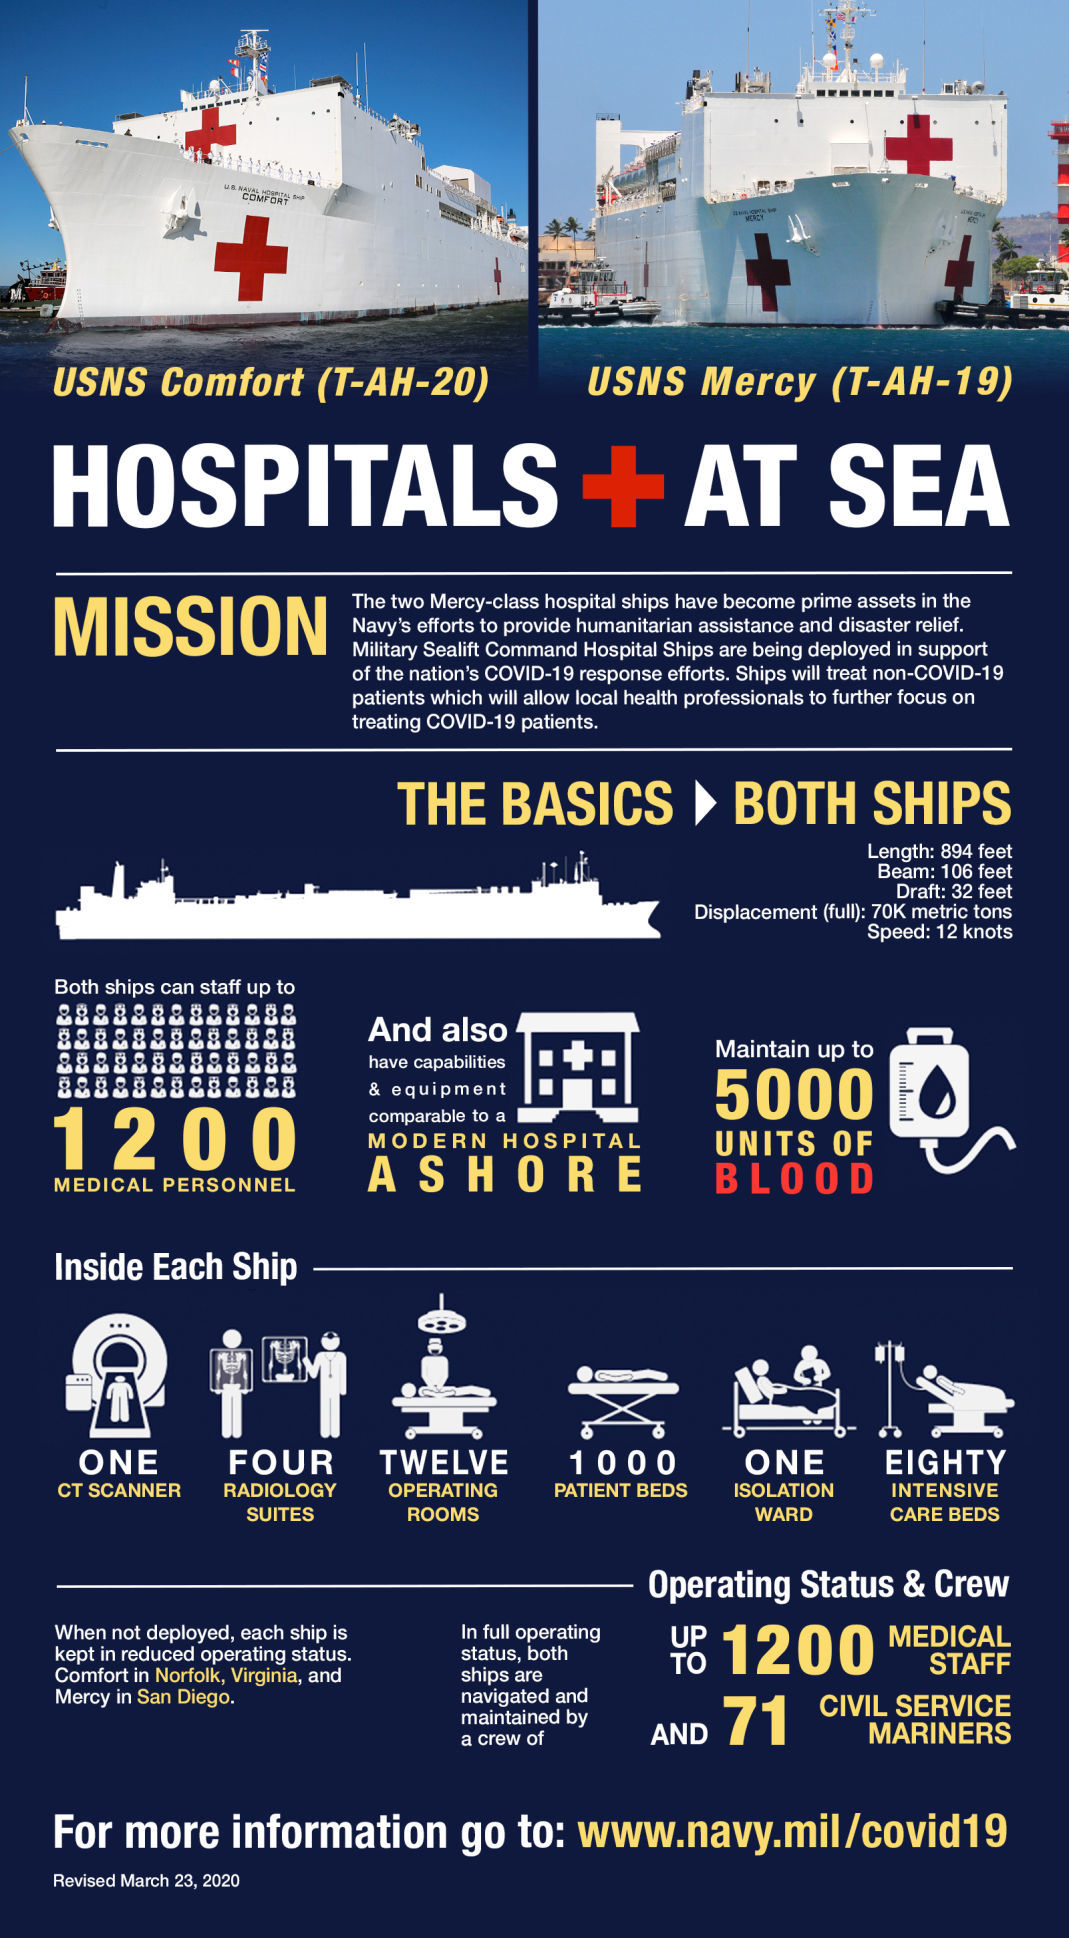 Hospital ships Comfort, Mercy deploy in battle against COVID-19